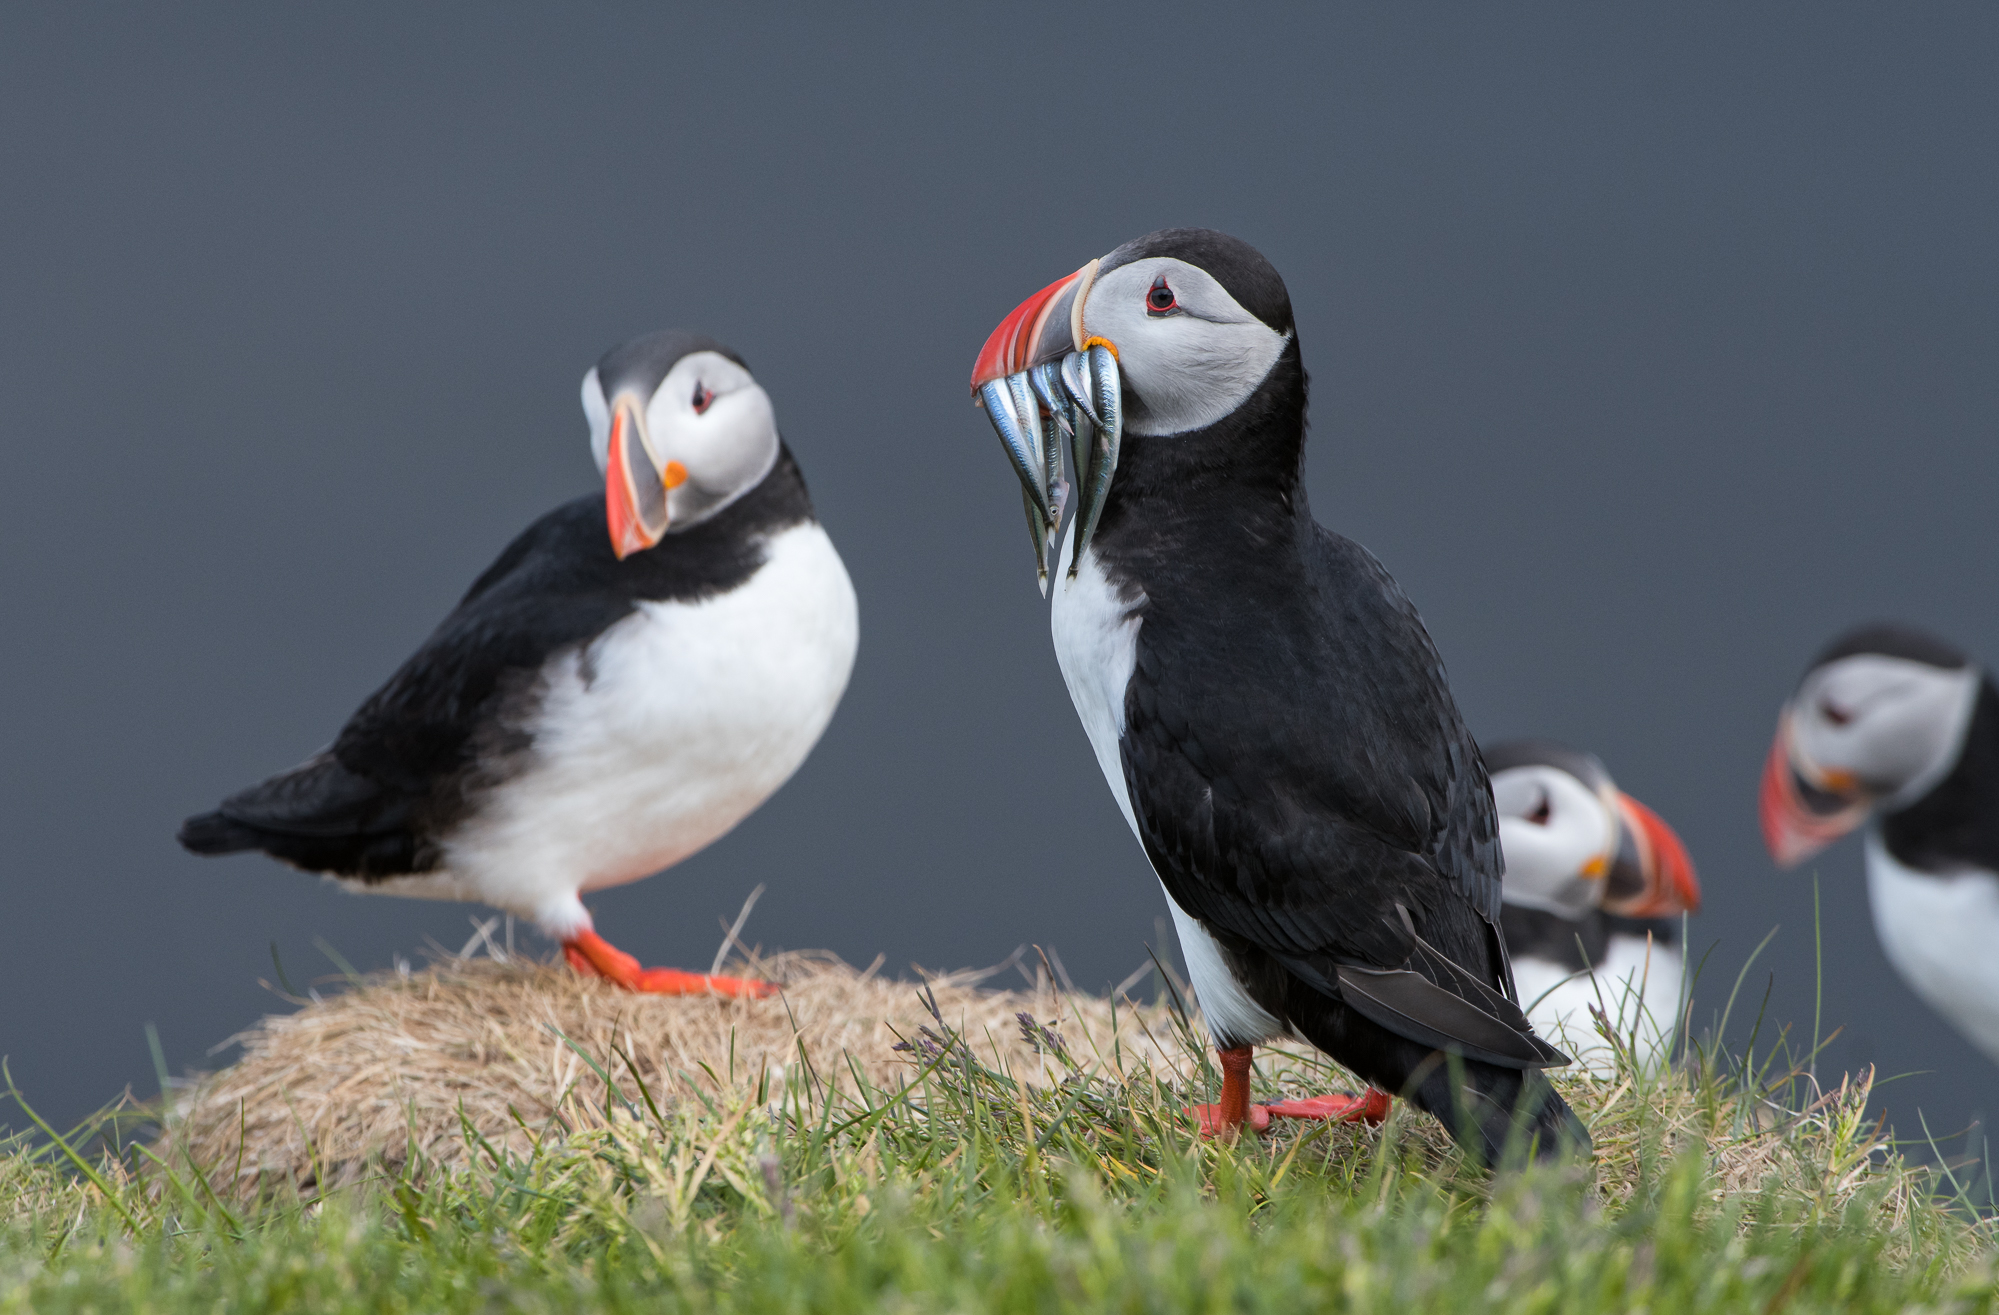 Atlantic Puffin Colony - Iceland  Nikon D500 + Nikon 200-400mm f/4.0